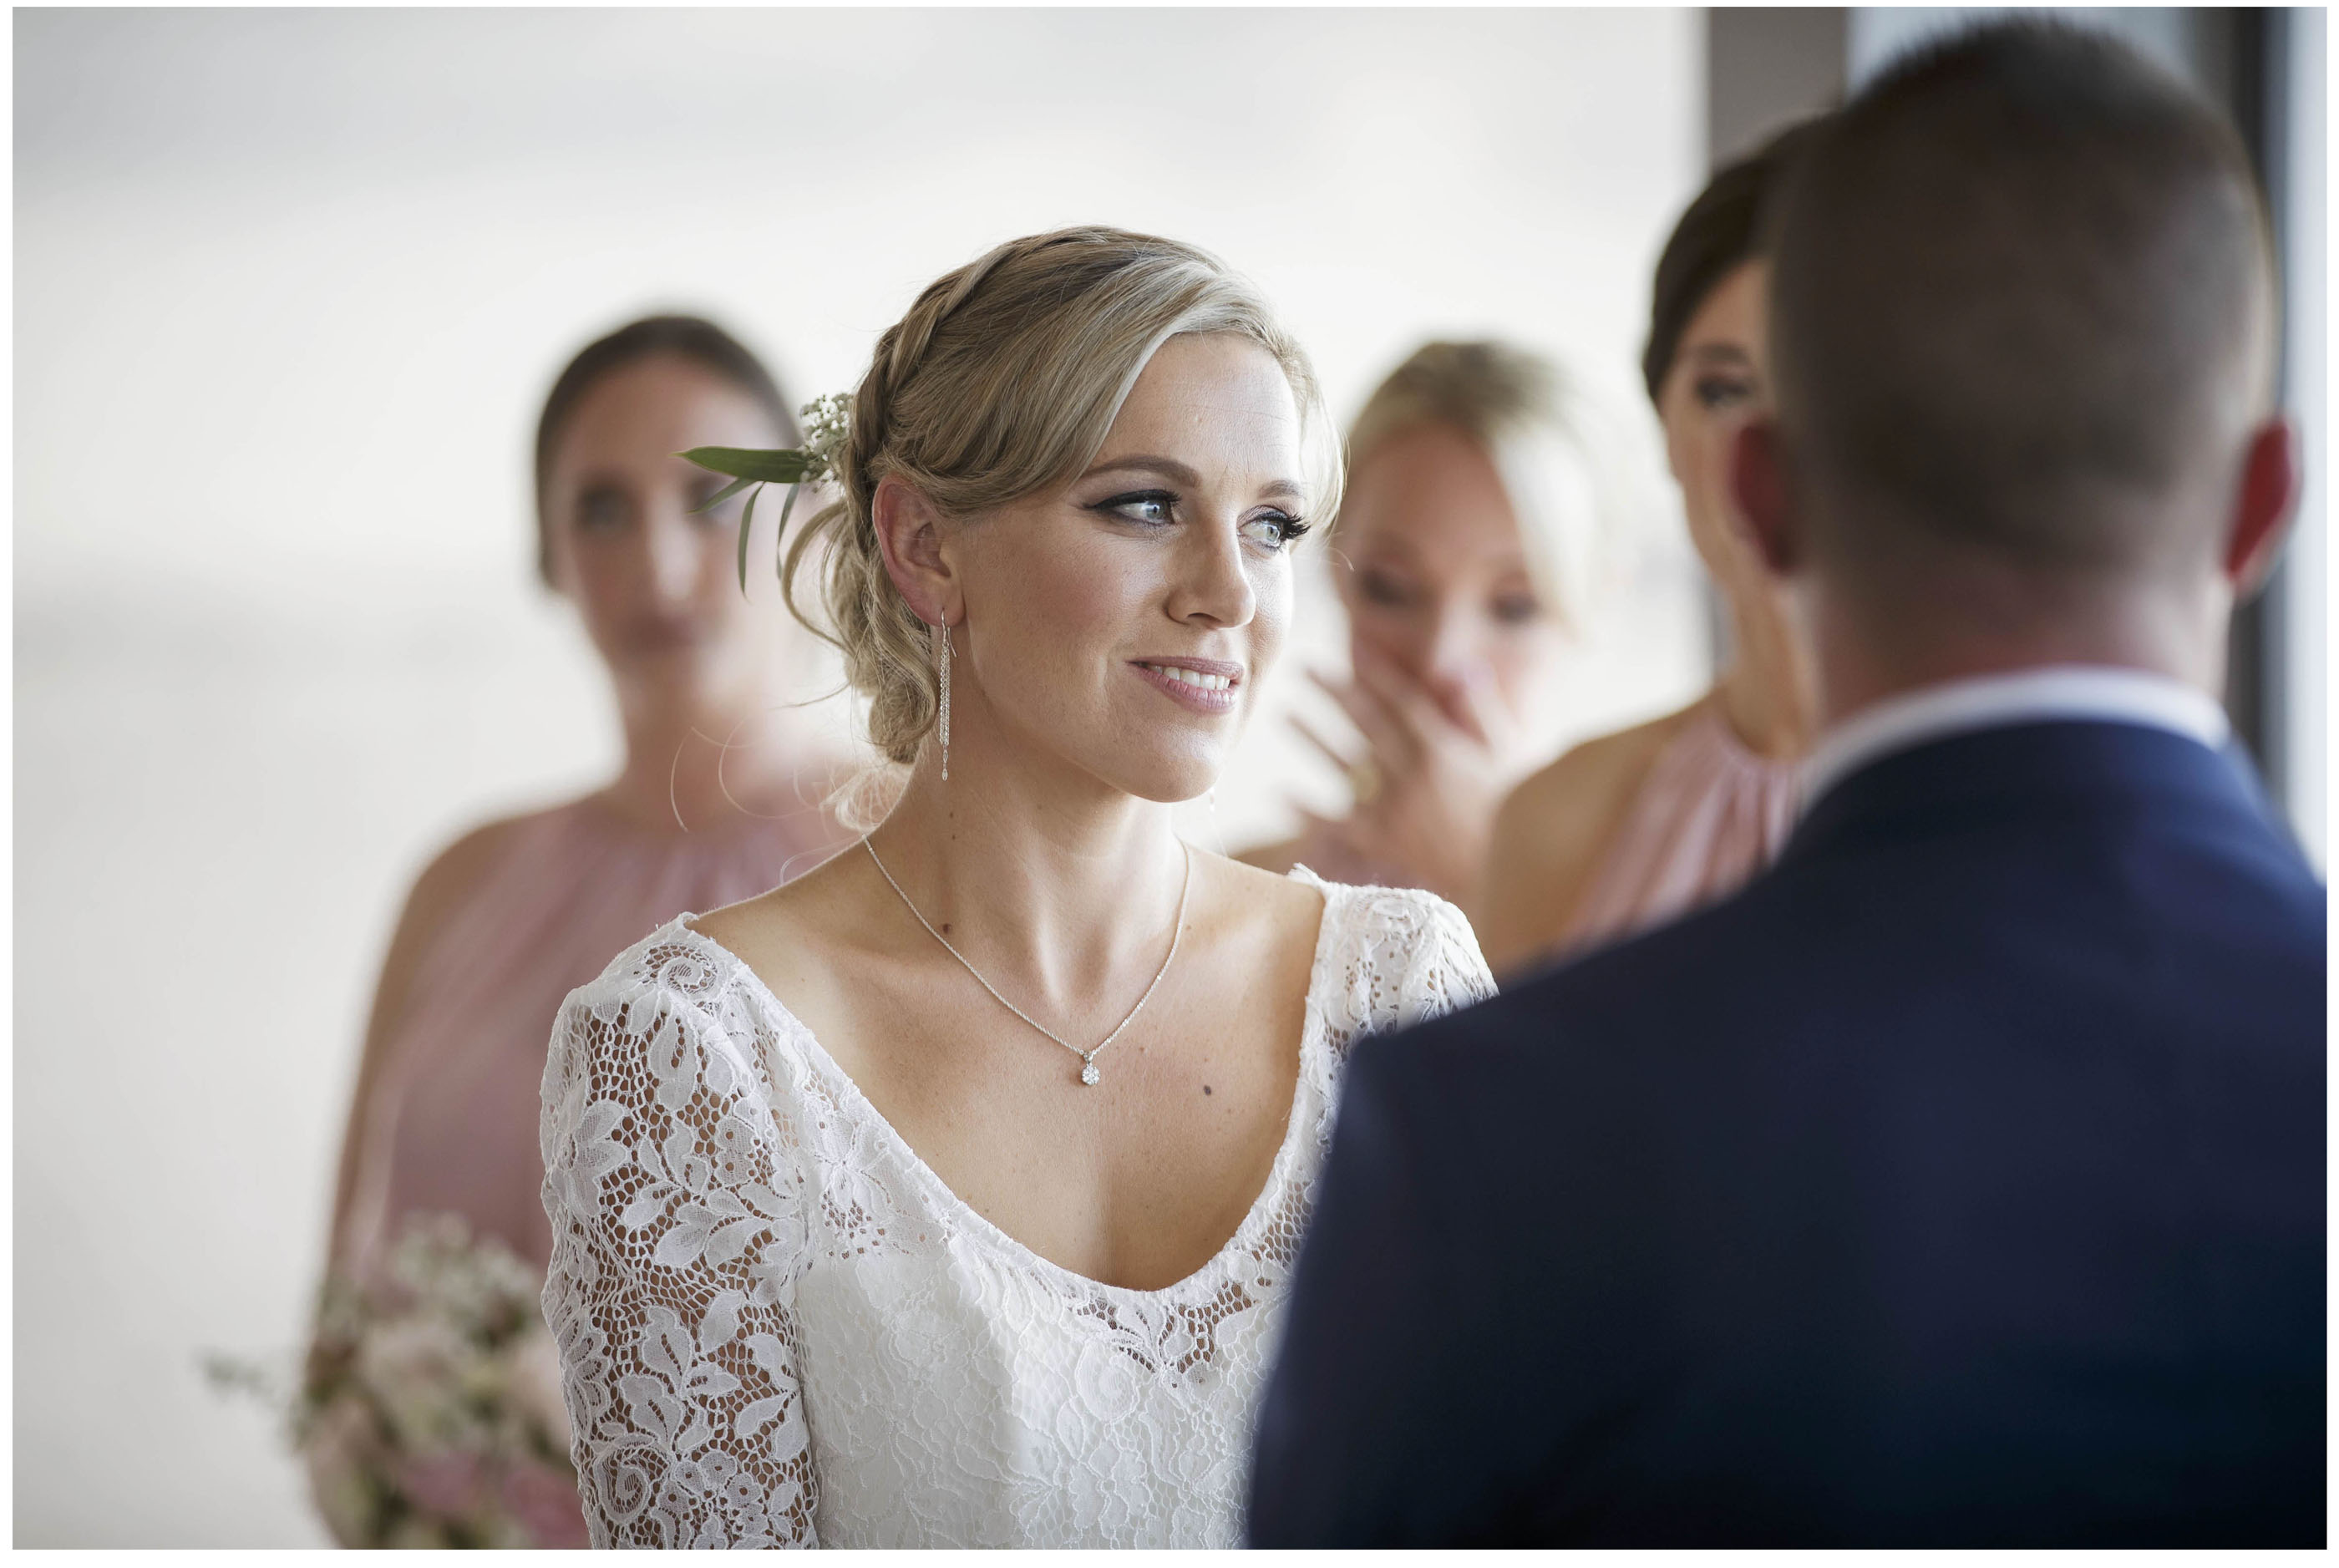 Bride in white lace wedding dress at wedding ceremony, Five knotts Wedding venue Auckland, Auckland Wedding Photographers